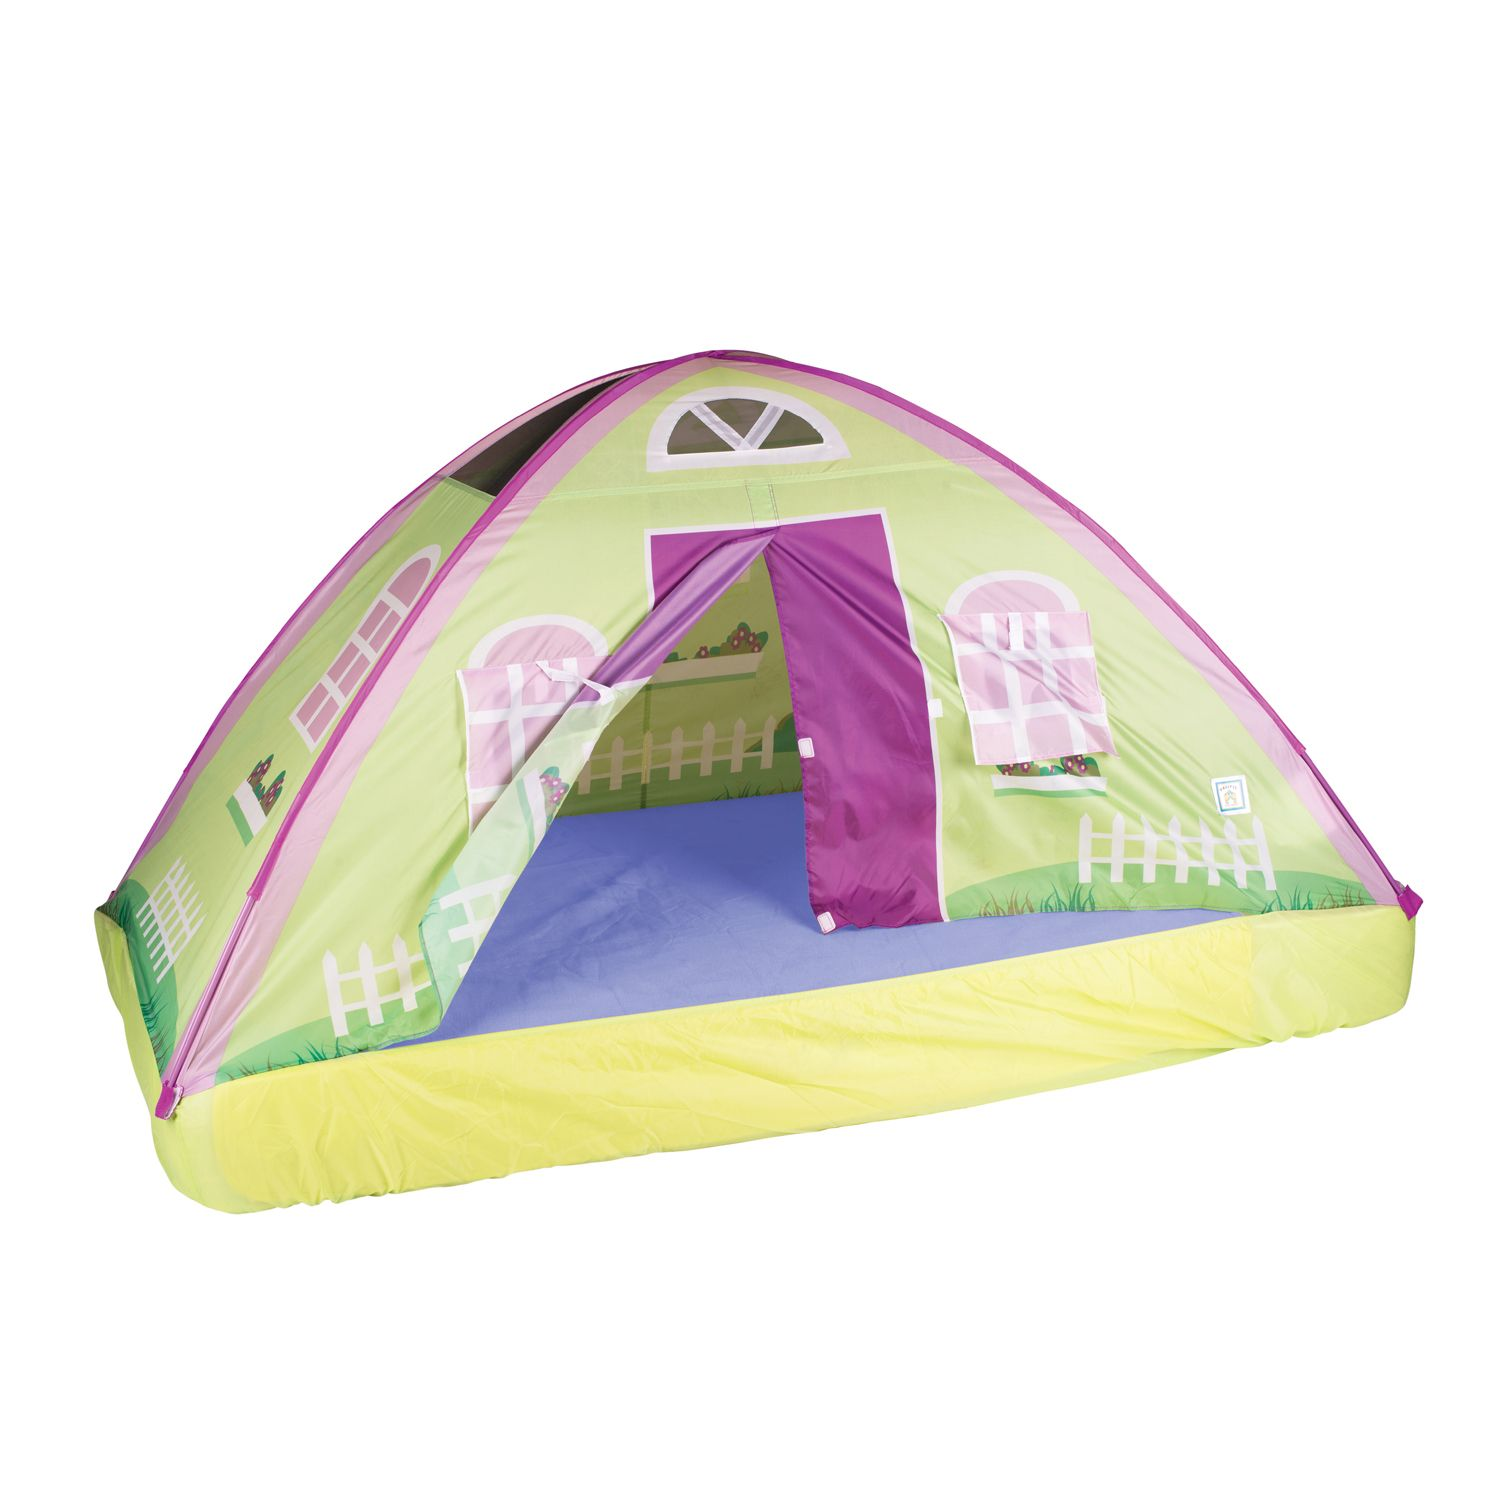 Pacific Play Tents Cottage Full-Sized Bed Tent  sc 1 st  Kohlu0027s & Play Tents u0026 Tunnels - Outdoor Play Toys Toys | Kohlu0027s